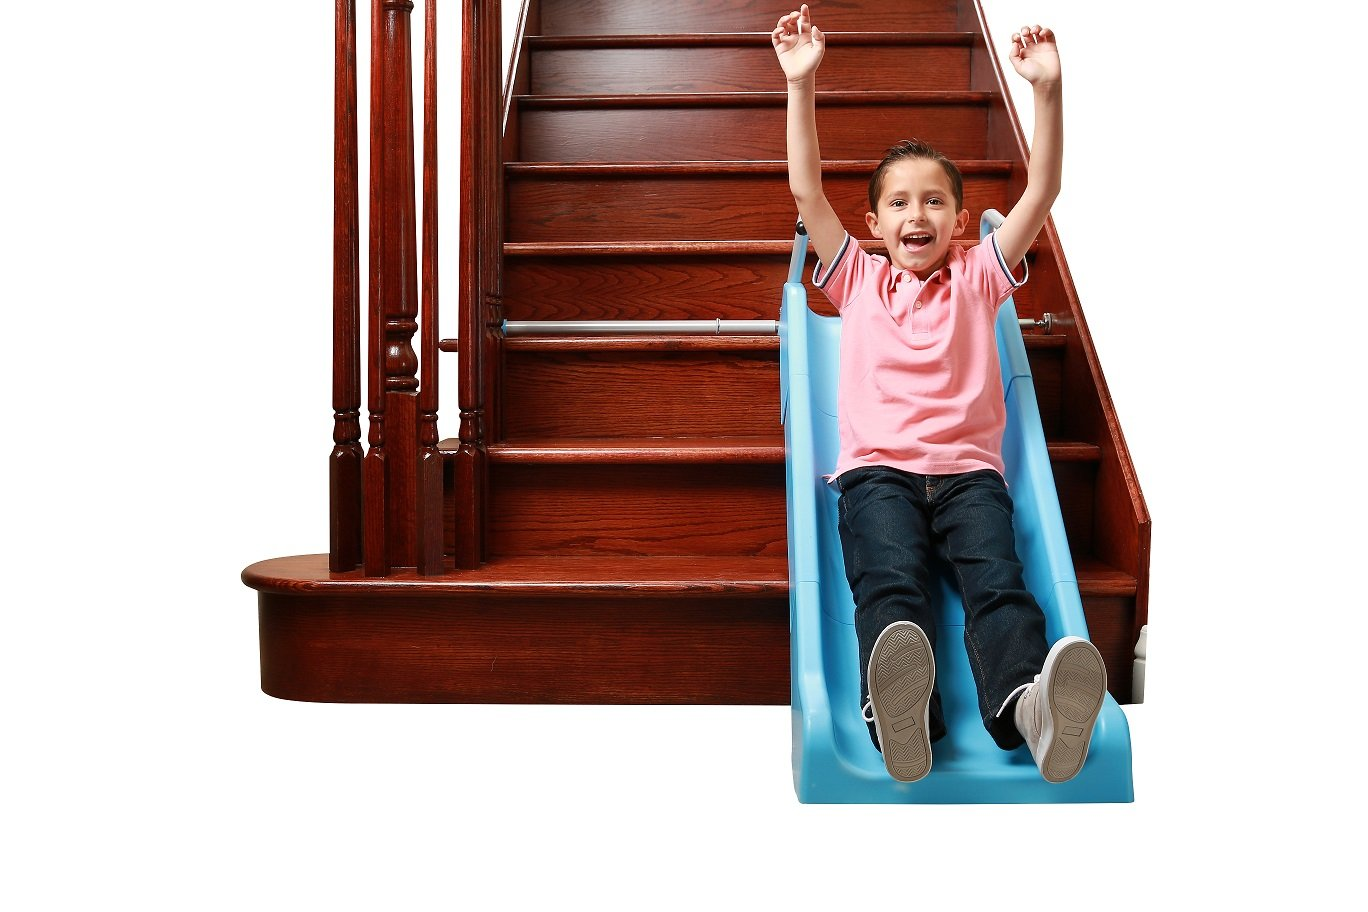 Indoor Stair Slide Toy playset Toys – Kids/Toddler/Boys/Girls Safe Playground Children on Stairs – Parents/Grandparents Gifts to Your Precious Ones